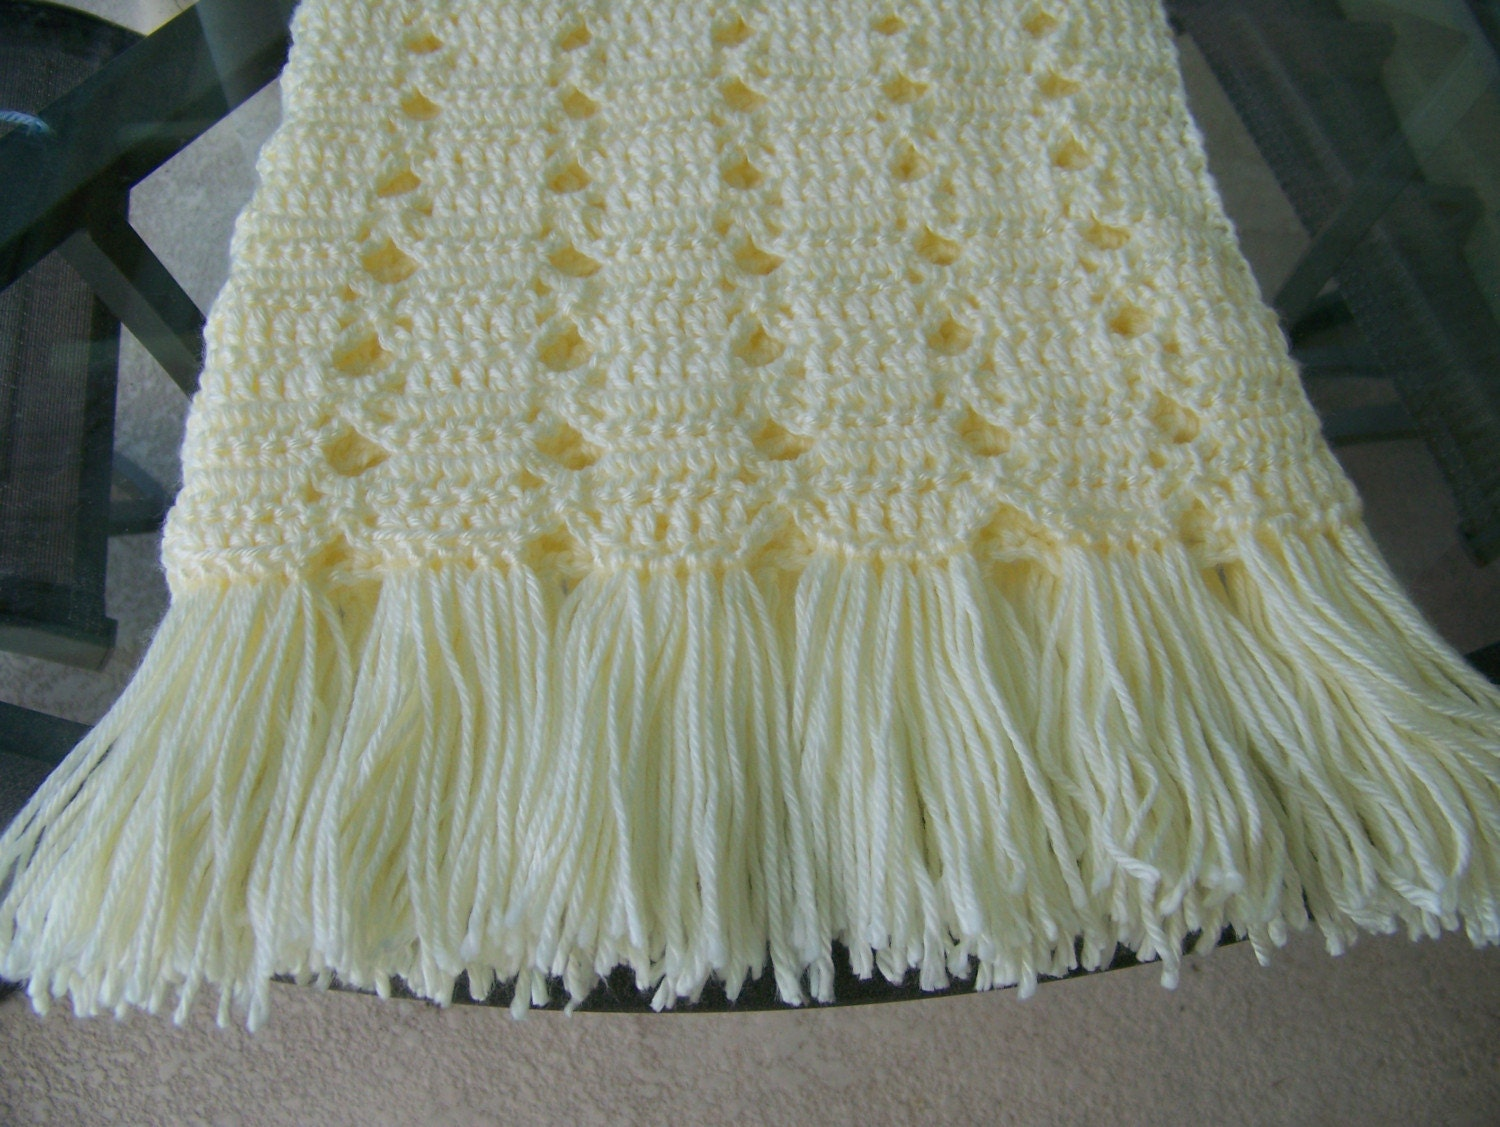 Free Crochet Patterns Using Caron Simply Soft Yarn : Baby Afghan in Soft Yellow Caron Yarn 27x35 Hand by ...